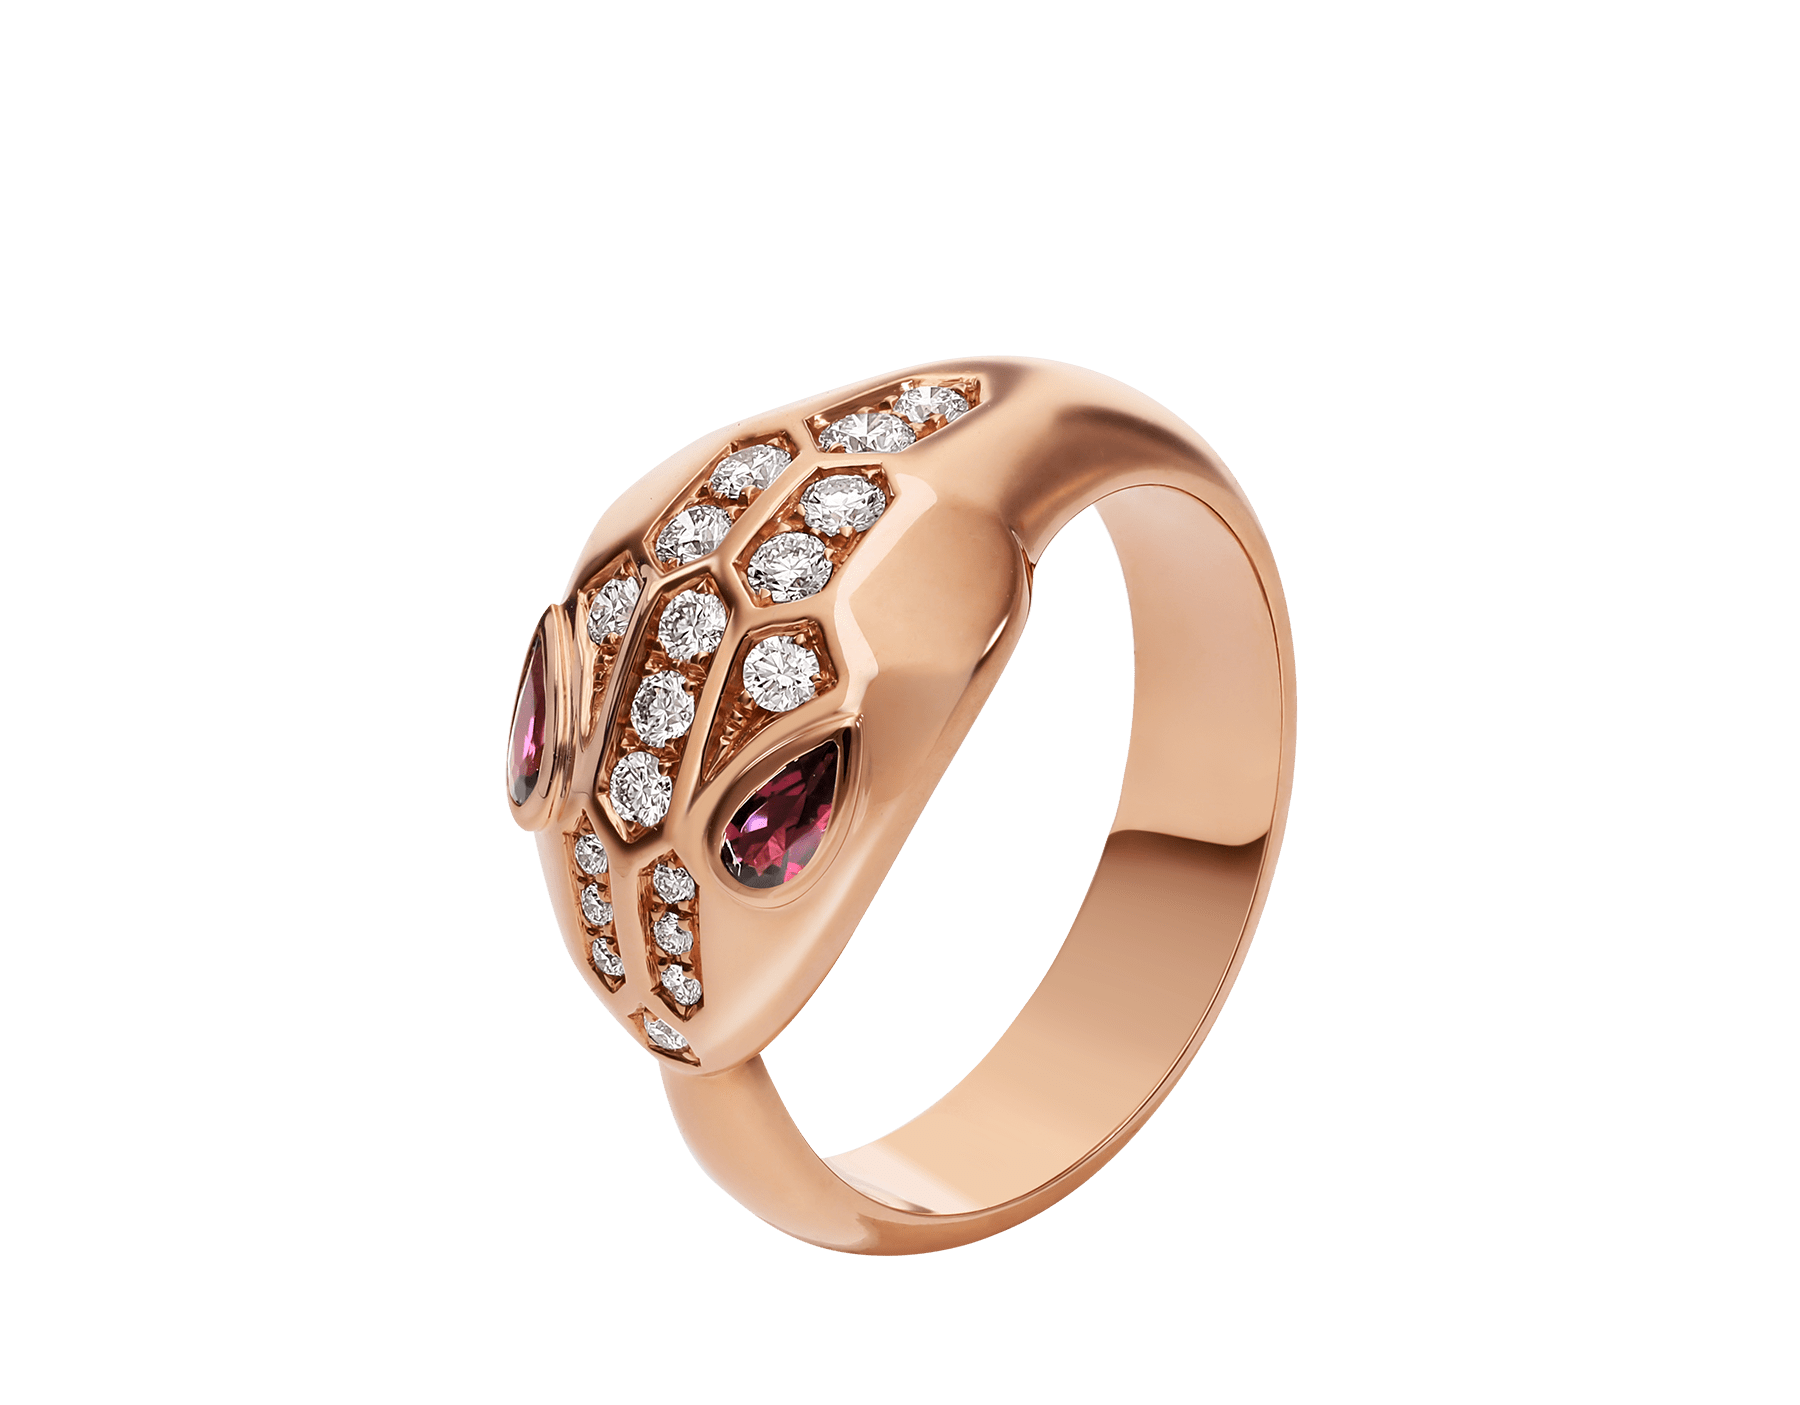 Serpenti ring in 18 kt rose gold, set wit rubellite eyes and demi pavé diamonds. AN857719 image 1